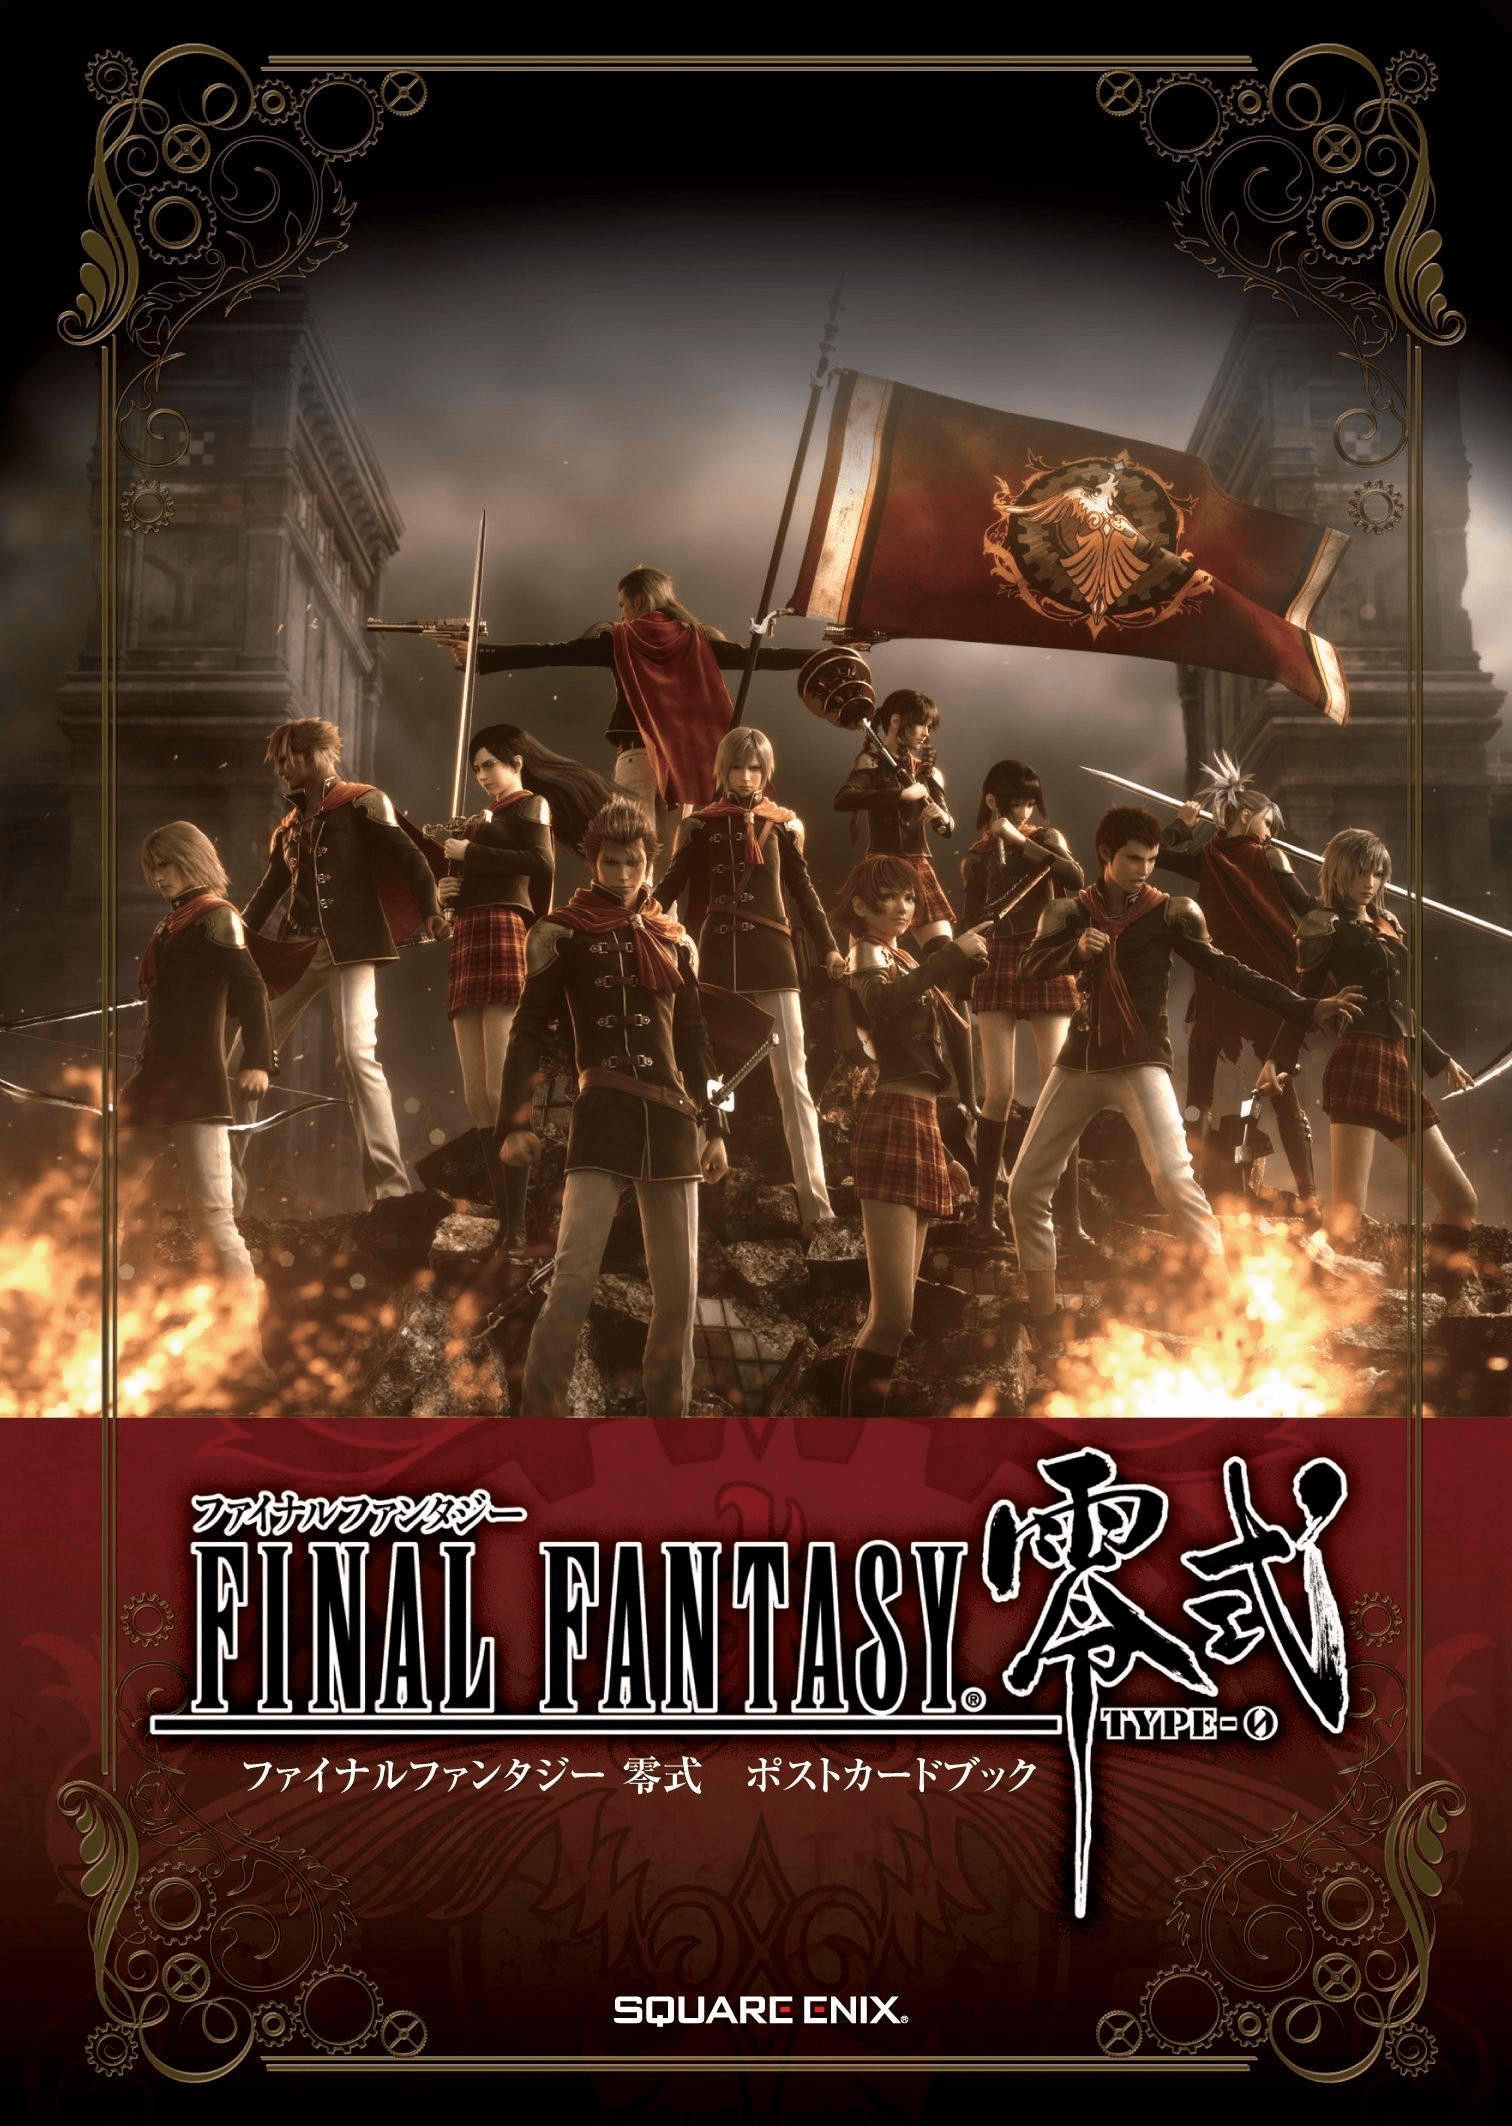 Thirteen Characters Assemble For Final Fantasy Type 0 RPG Site